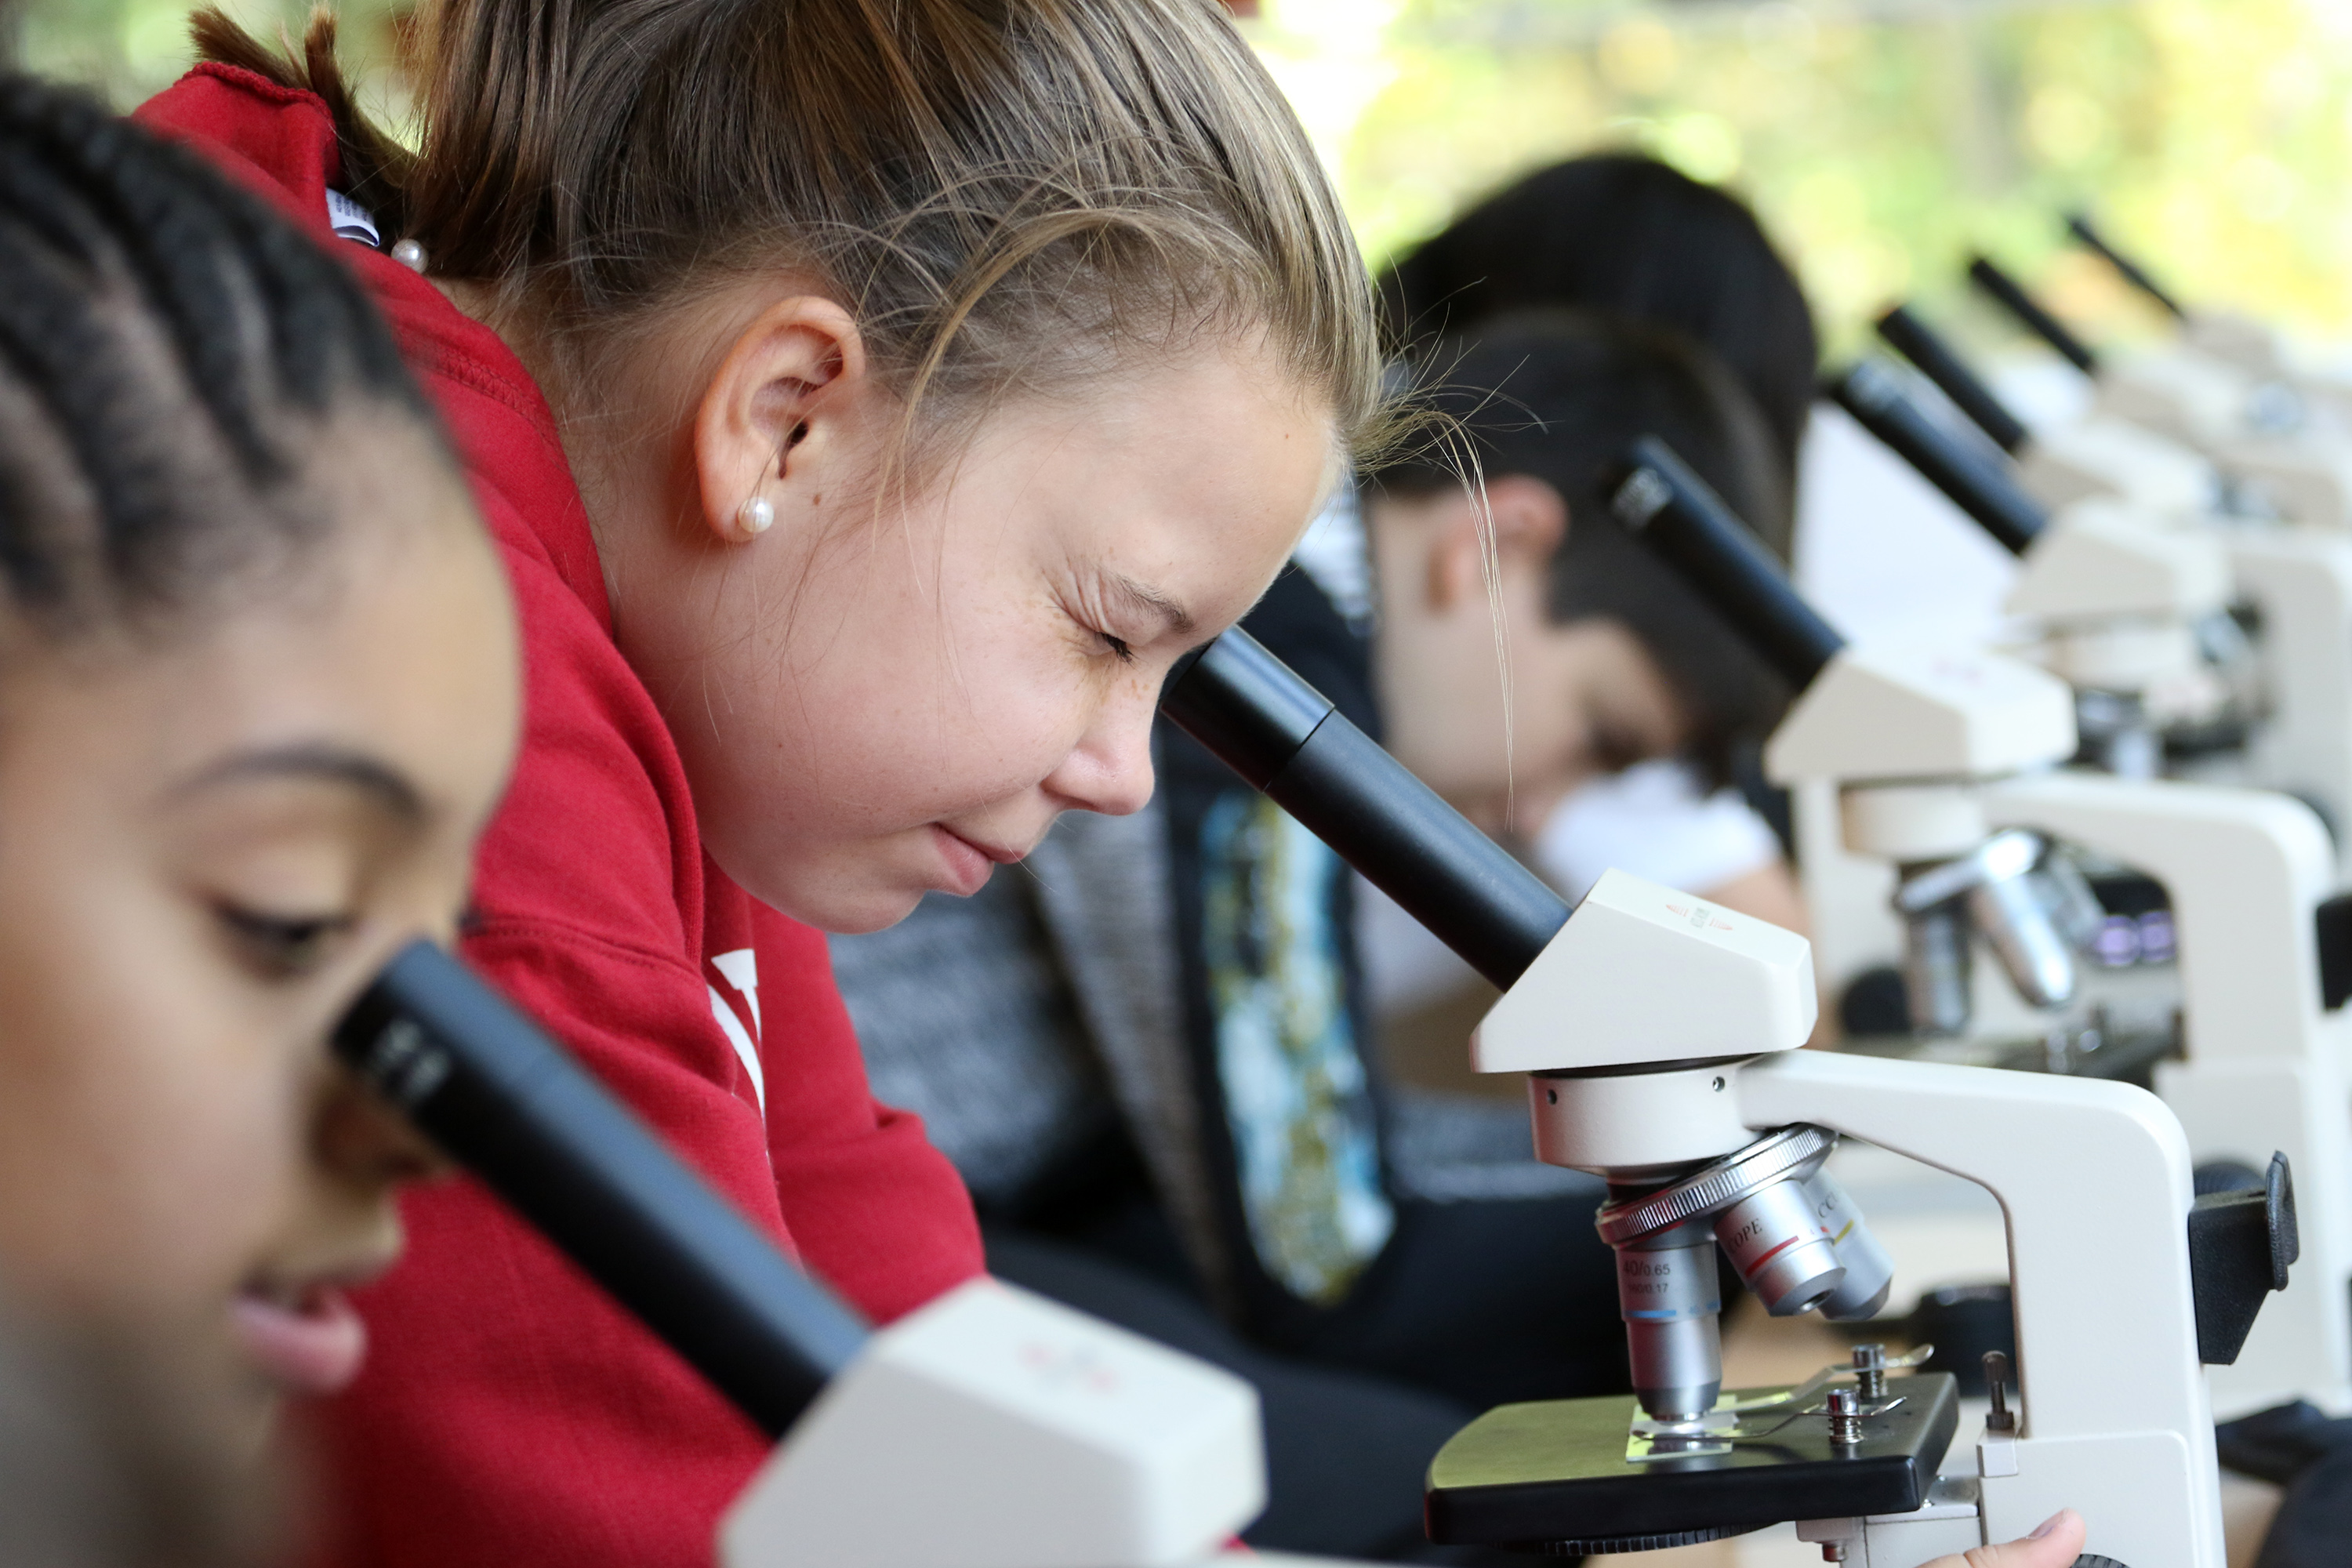 Students use microscopes during a lab